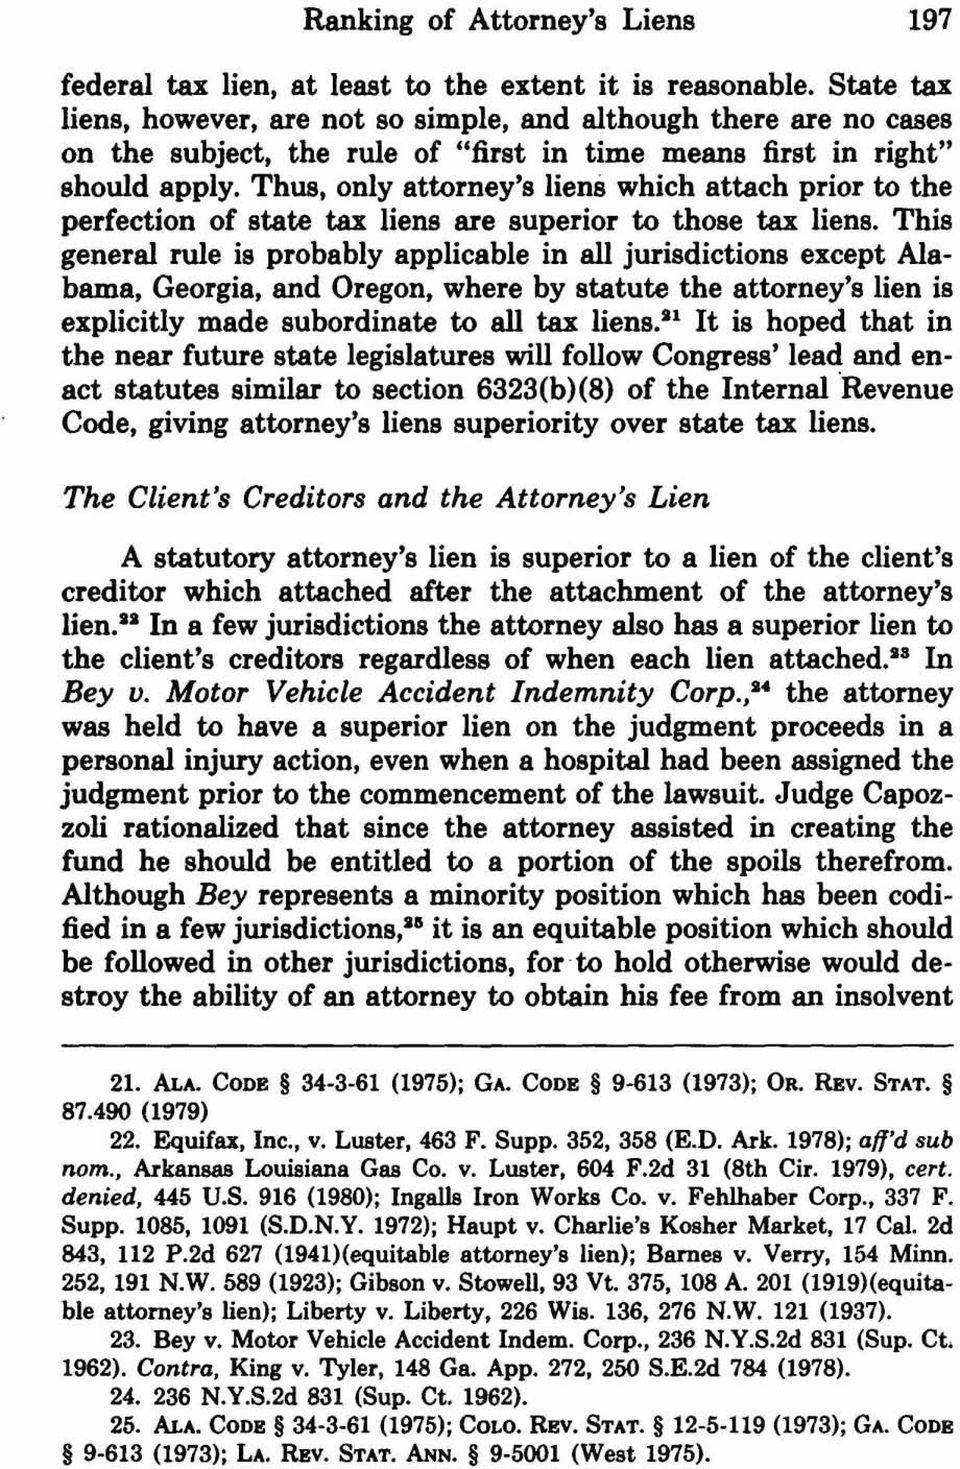 Thus, only attorney's liens which attach prior to the perfection of state tax liens are superior to those tax liens.